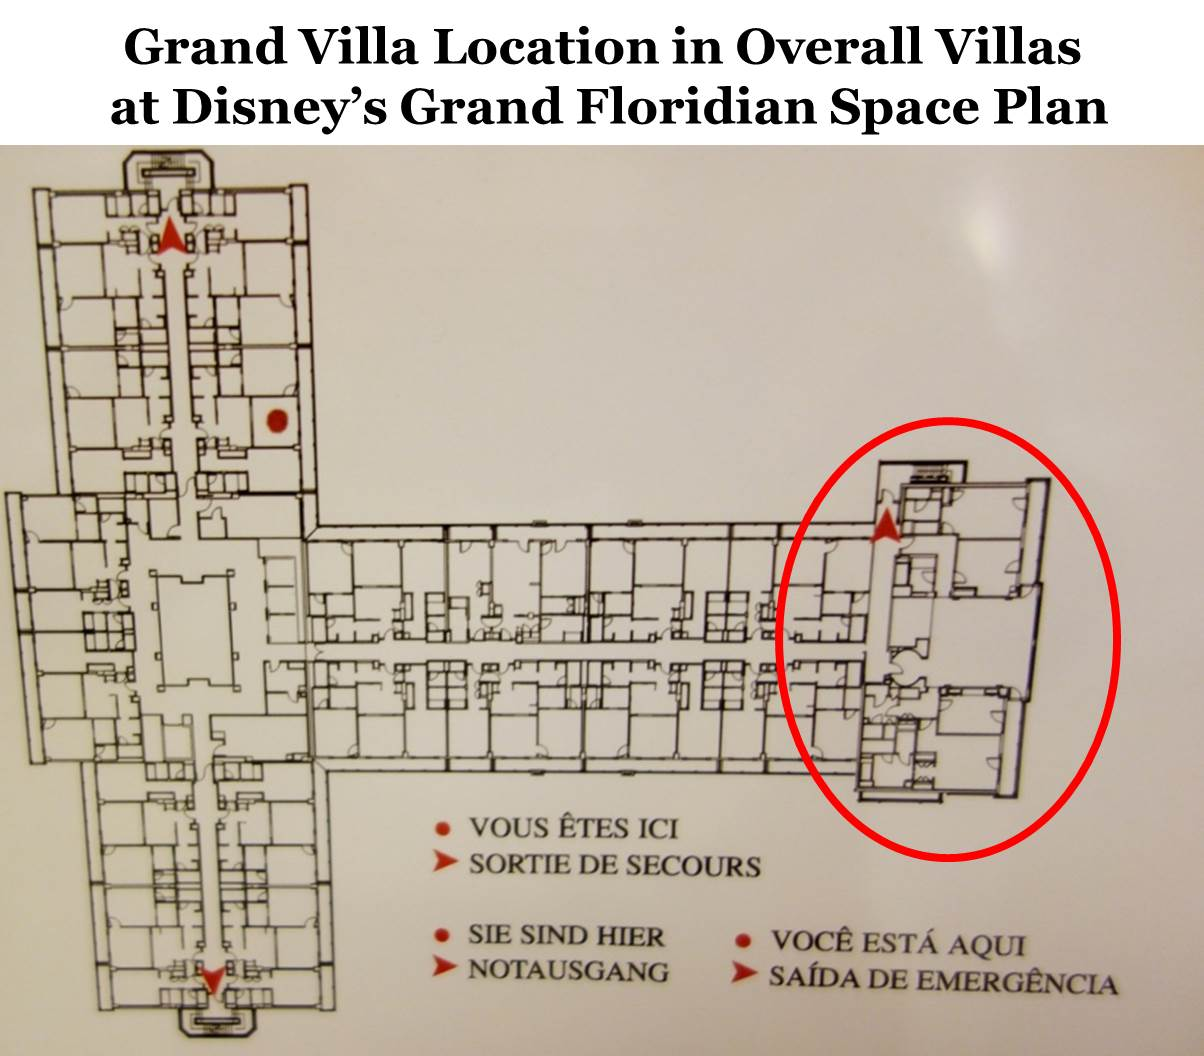 Grand Floridian 2 Bedroom Villa Floor Plan: Theming And Accommodations At The Villas At Disney's Grand